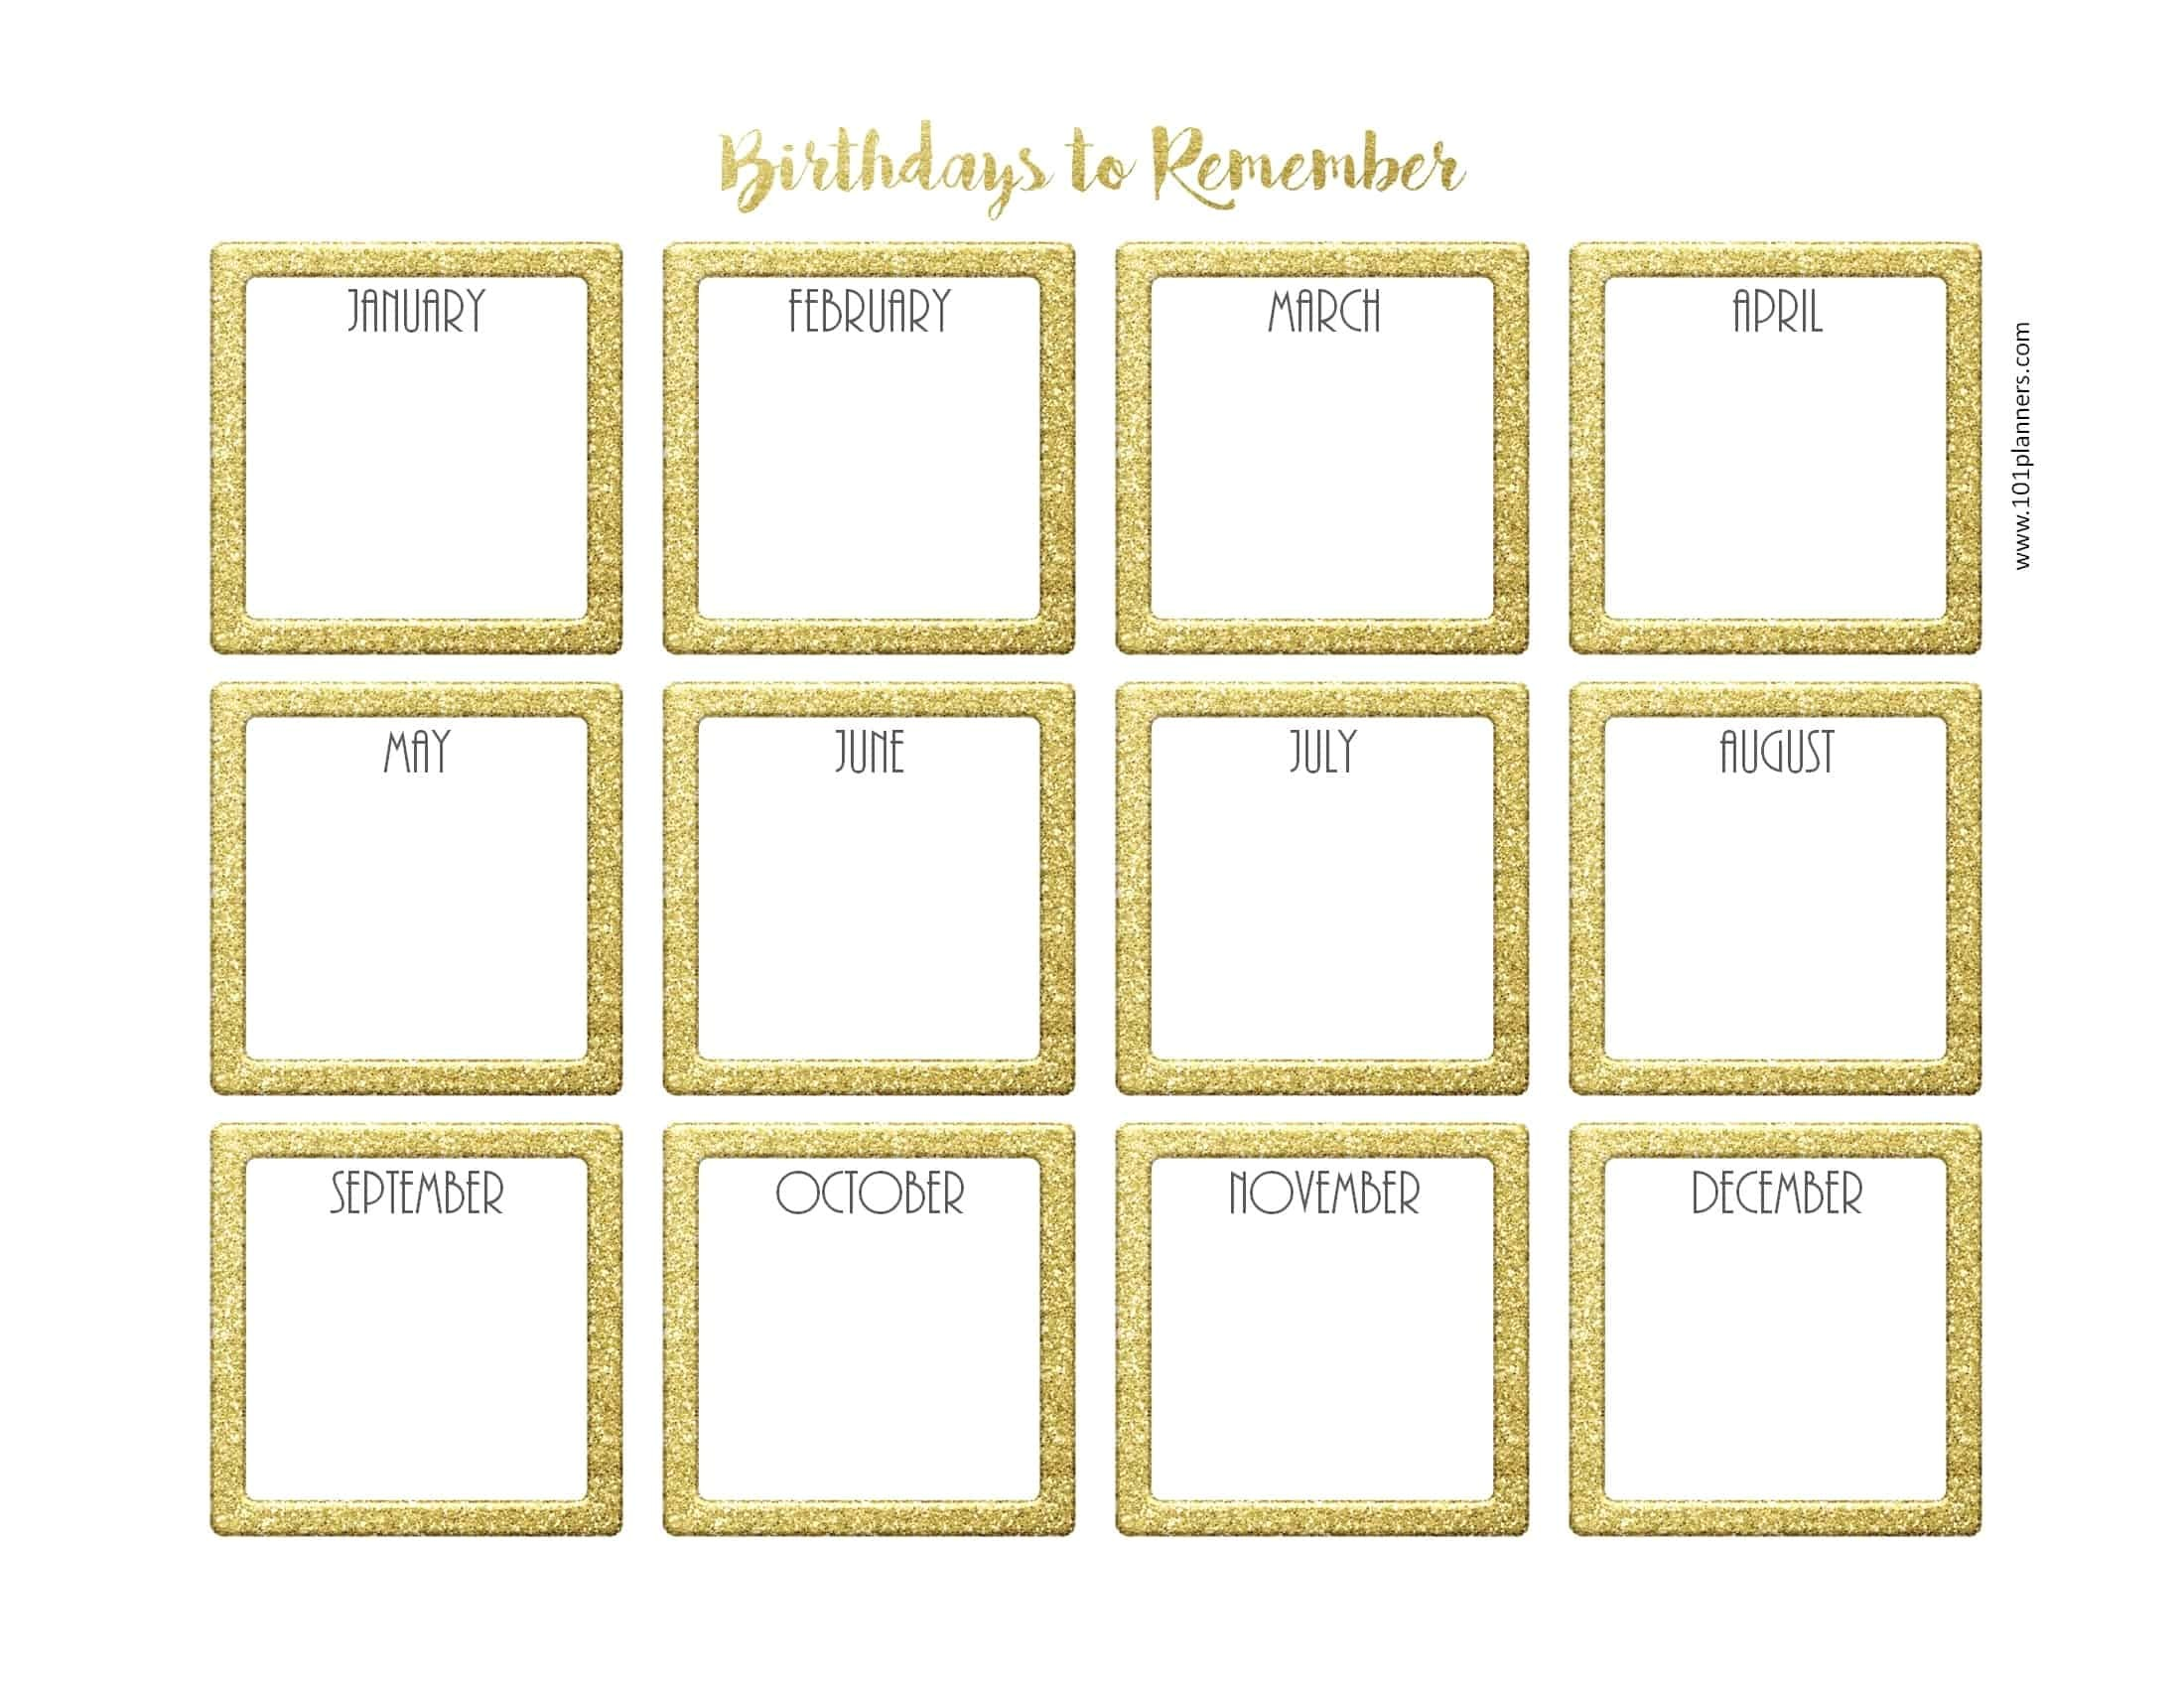 Birthday Calendars Templates Free Free Birthday Calendar Customize Online Print at Home